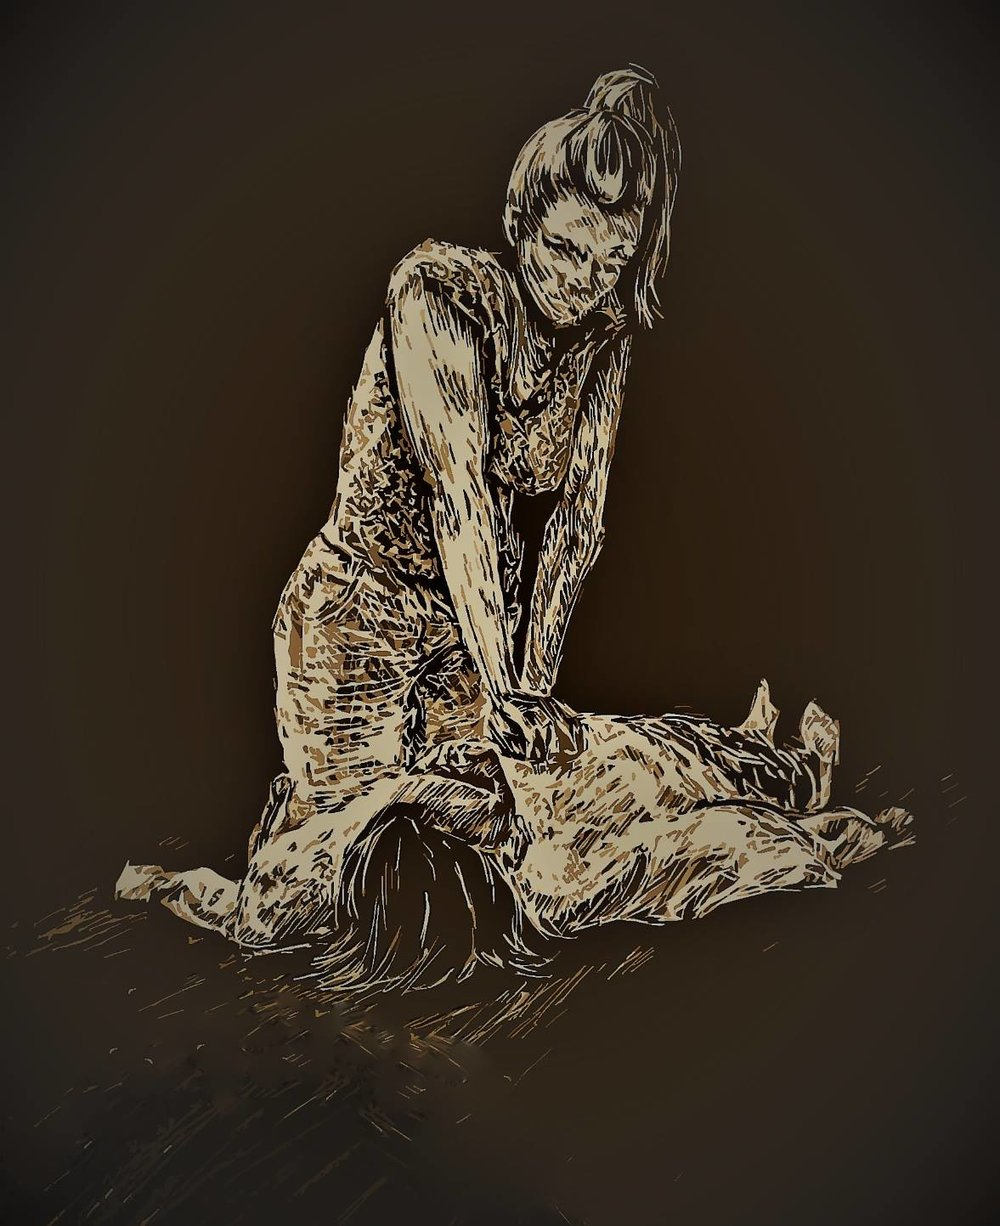 "Reparation and Resuscitation  by Laura Elizabeth Hand   Reparation and Resuscitation  is 10"" x 12"" scratchboard, watercolor, and white paint and features a young woman performing CPR to resuscitate a collapsed figure.   This piece was first published in Quarto's Spring 2017 edition."